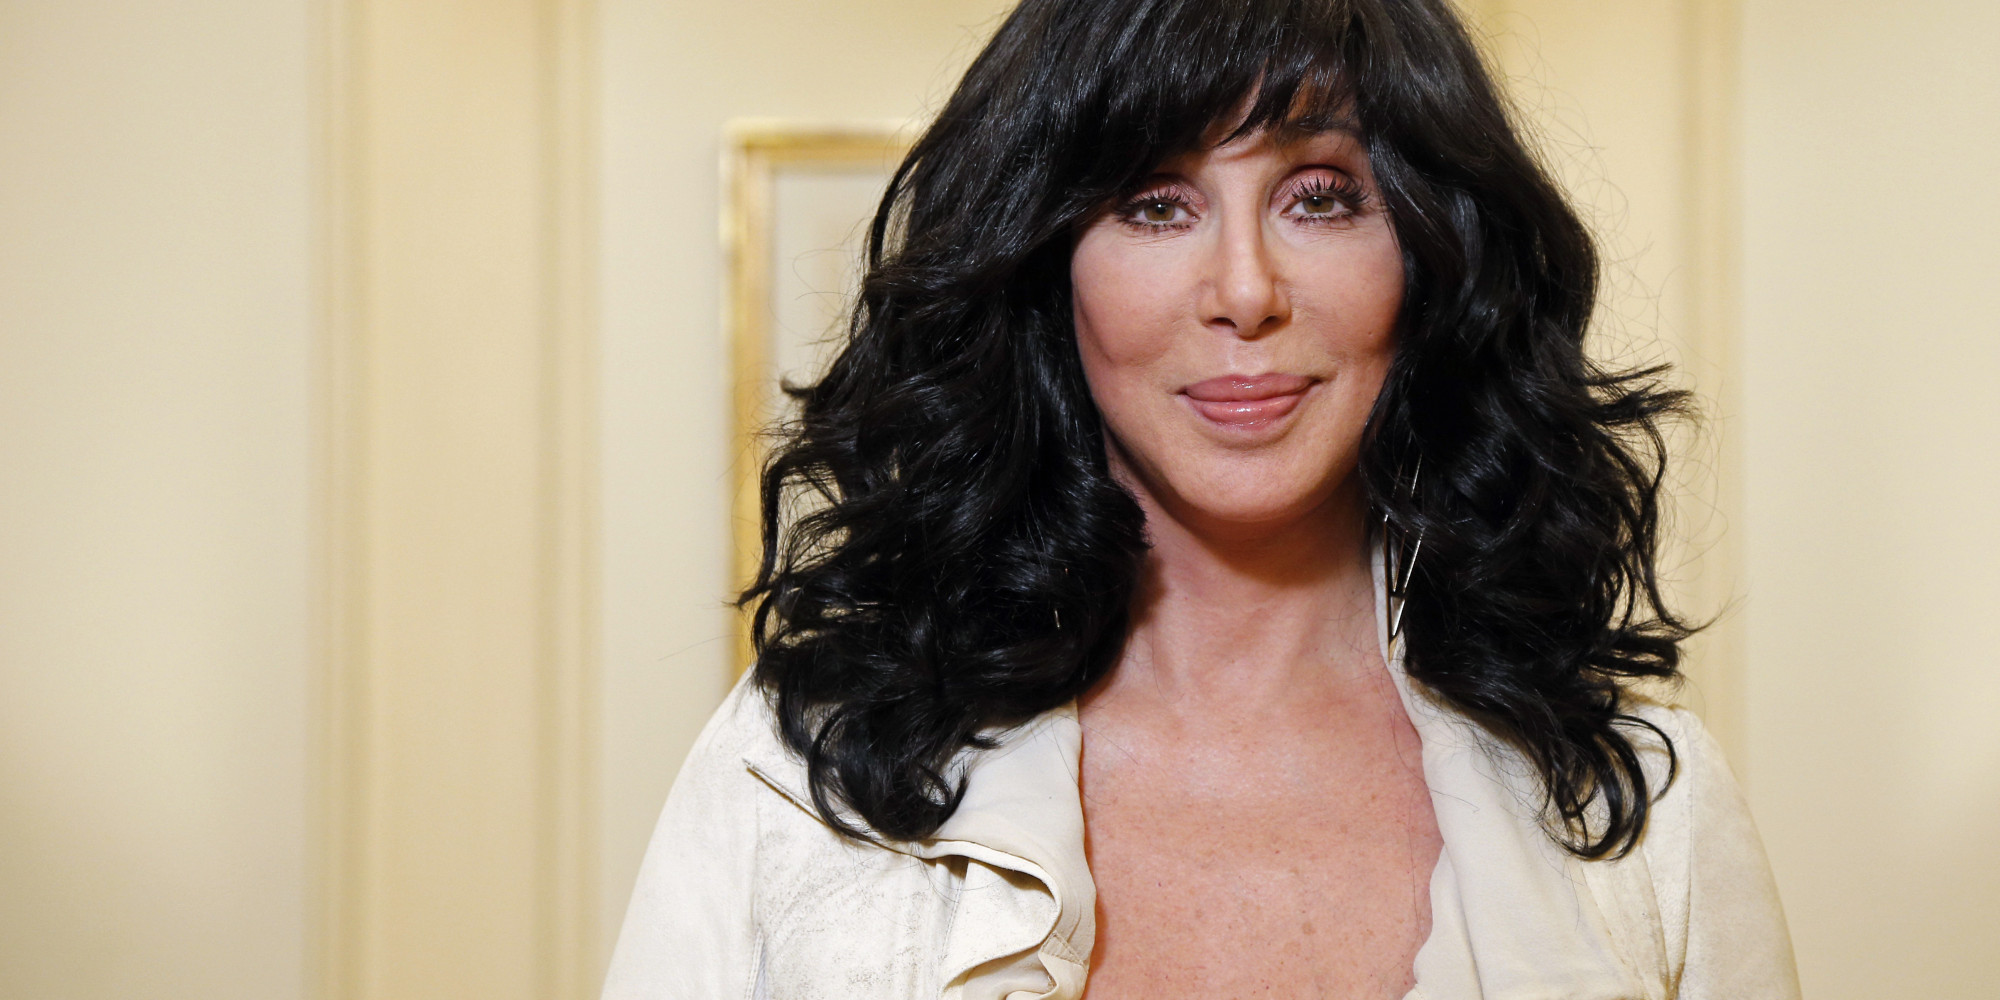 US singer and actress Cher poses on October 10, 2013 in Paris.    AFP PHOTO FRANCOIS GUILLOT        (Photo credit should read FRANCOIS GUILLOT/AFP/Getty Images)